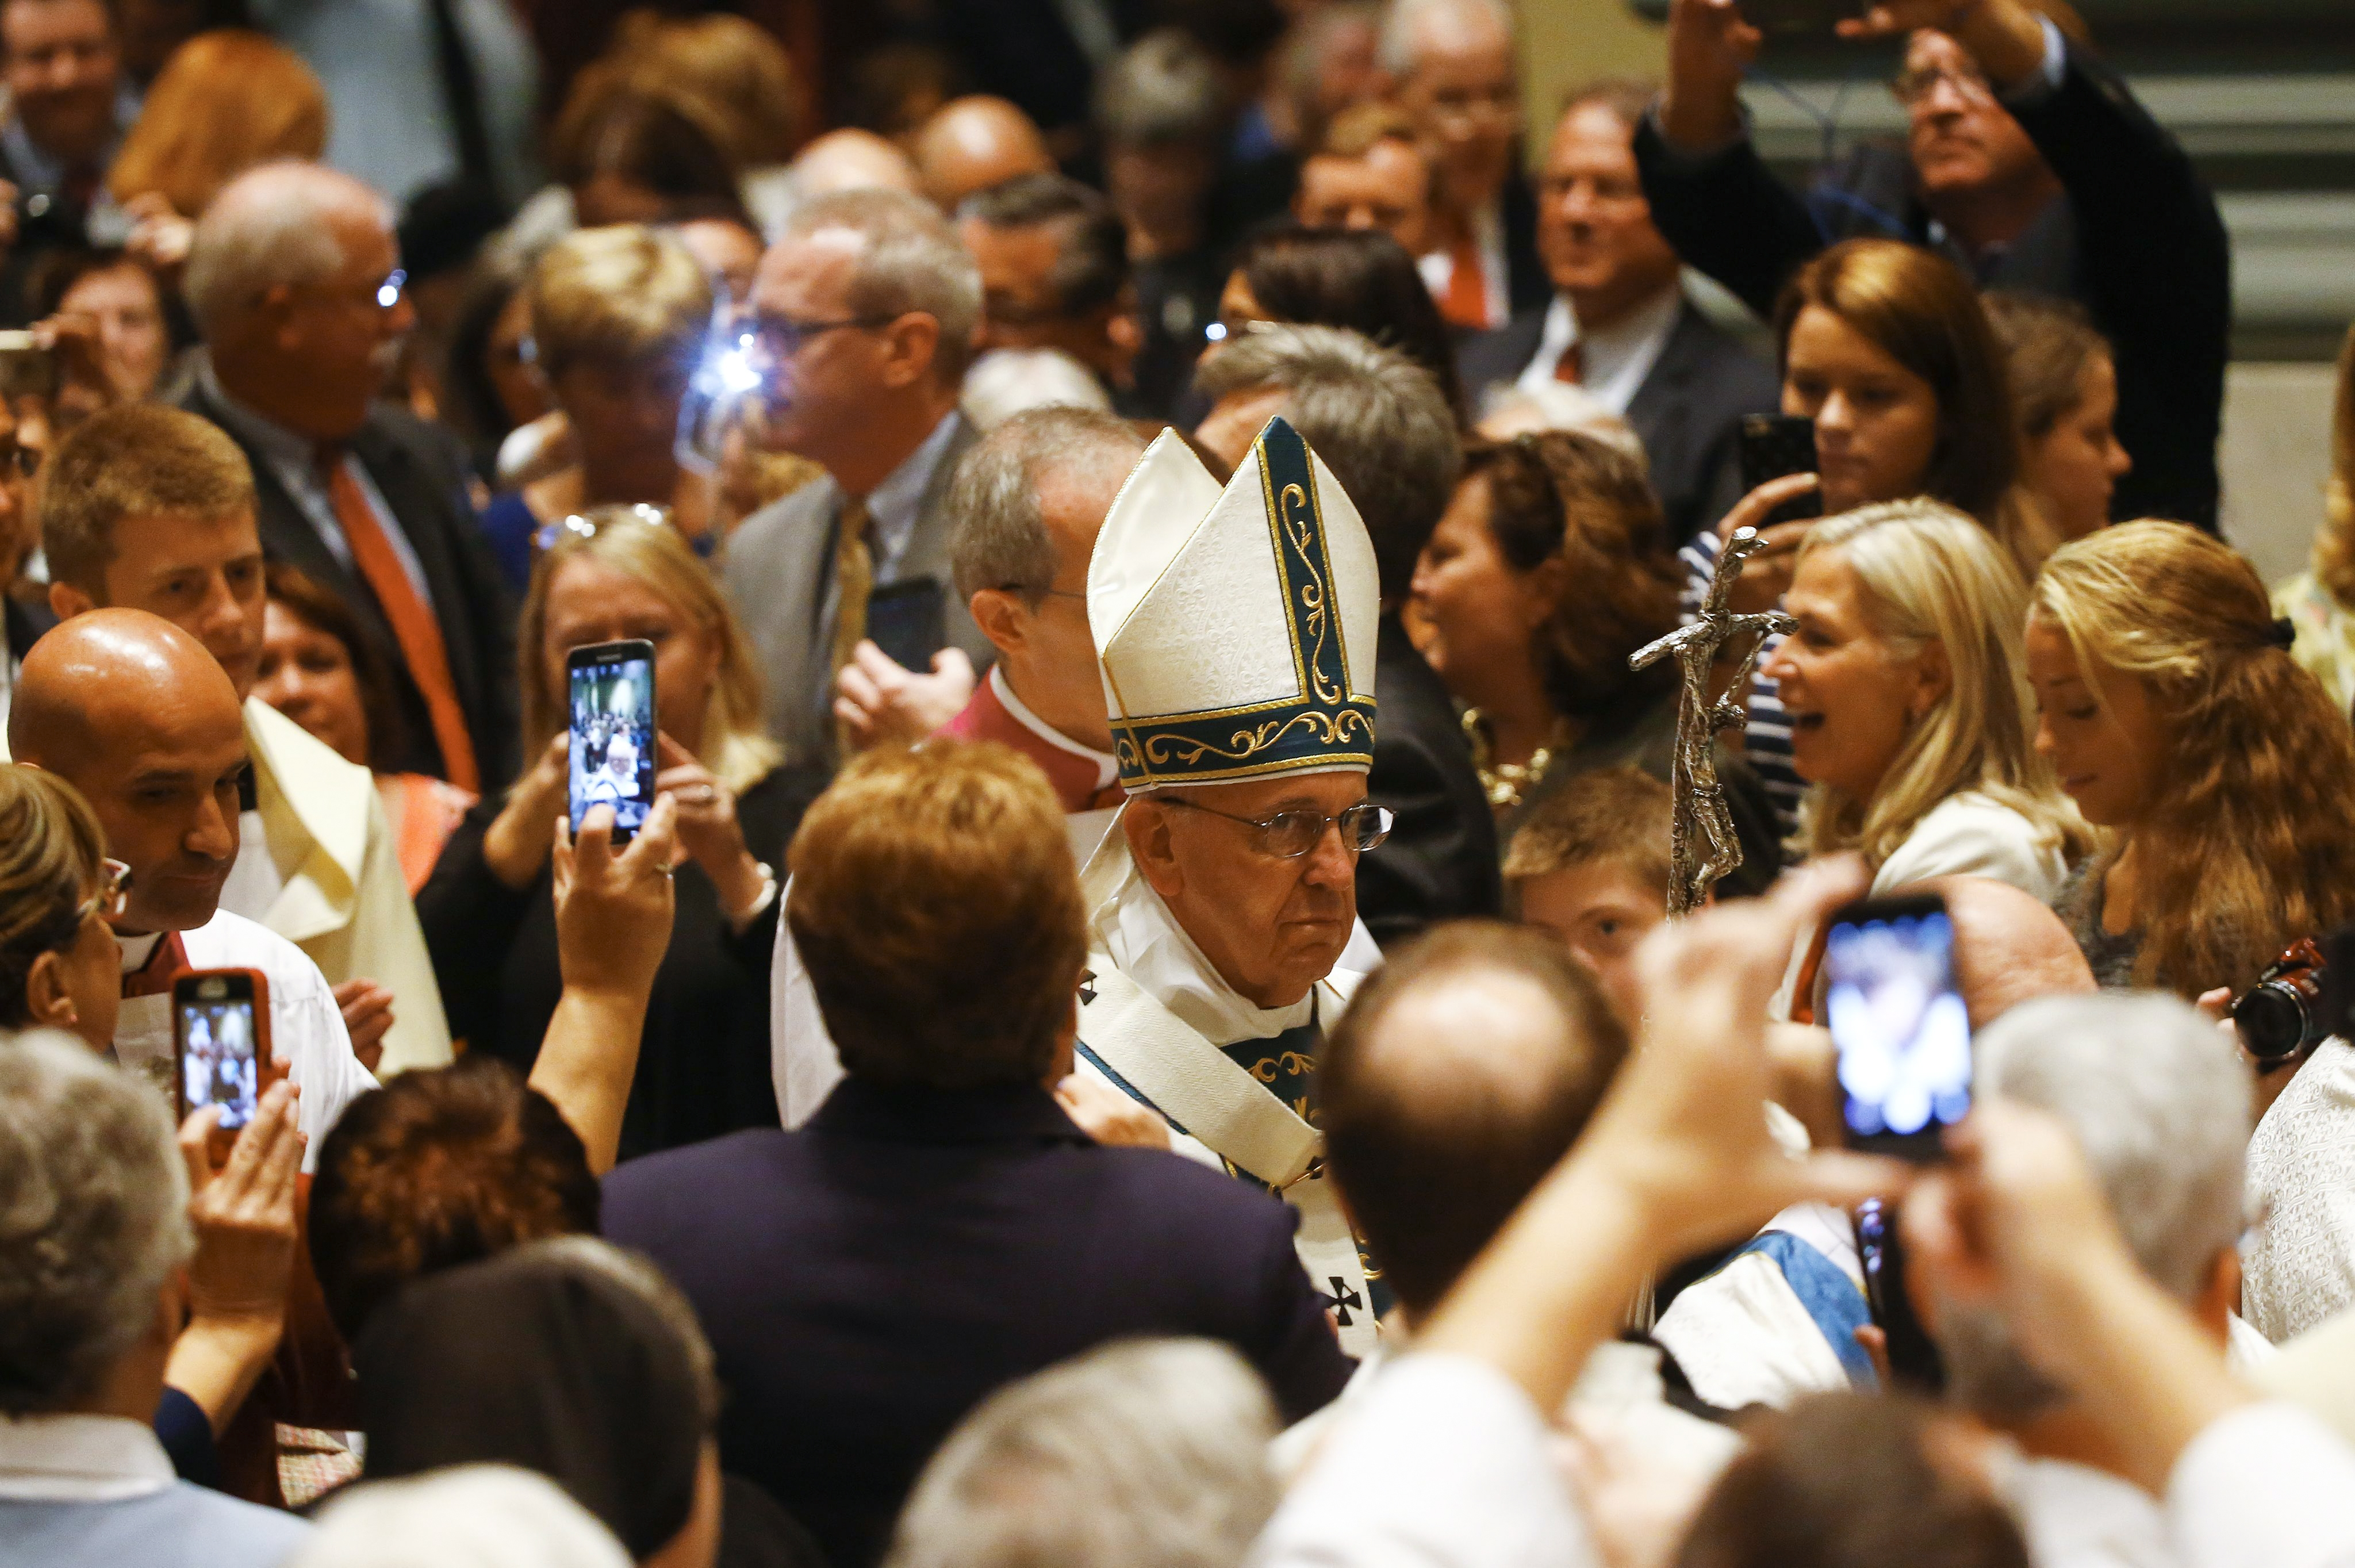 Pope Francis walks through a crowd of attendees during a celebration of Mass at the Cathedral Basilica of SS. Peter and Paul in Philadelphia, Sept. 26, 2015. Arriving in Philadelphia Saturday on the final leg of a visit to the U.S., Francis also was expected to speak at Independence Hall and attend the World Meeting of Families, a triennial gathering of Catholic families started by Pope John Paul II in 1994. (Tony Gentile/Pool via The New York Times)